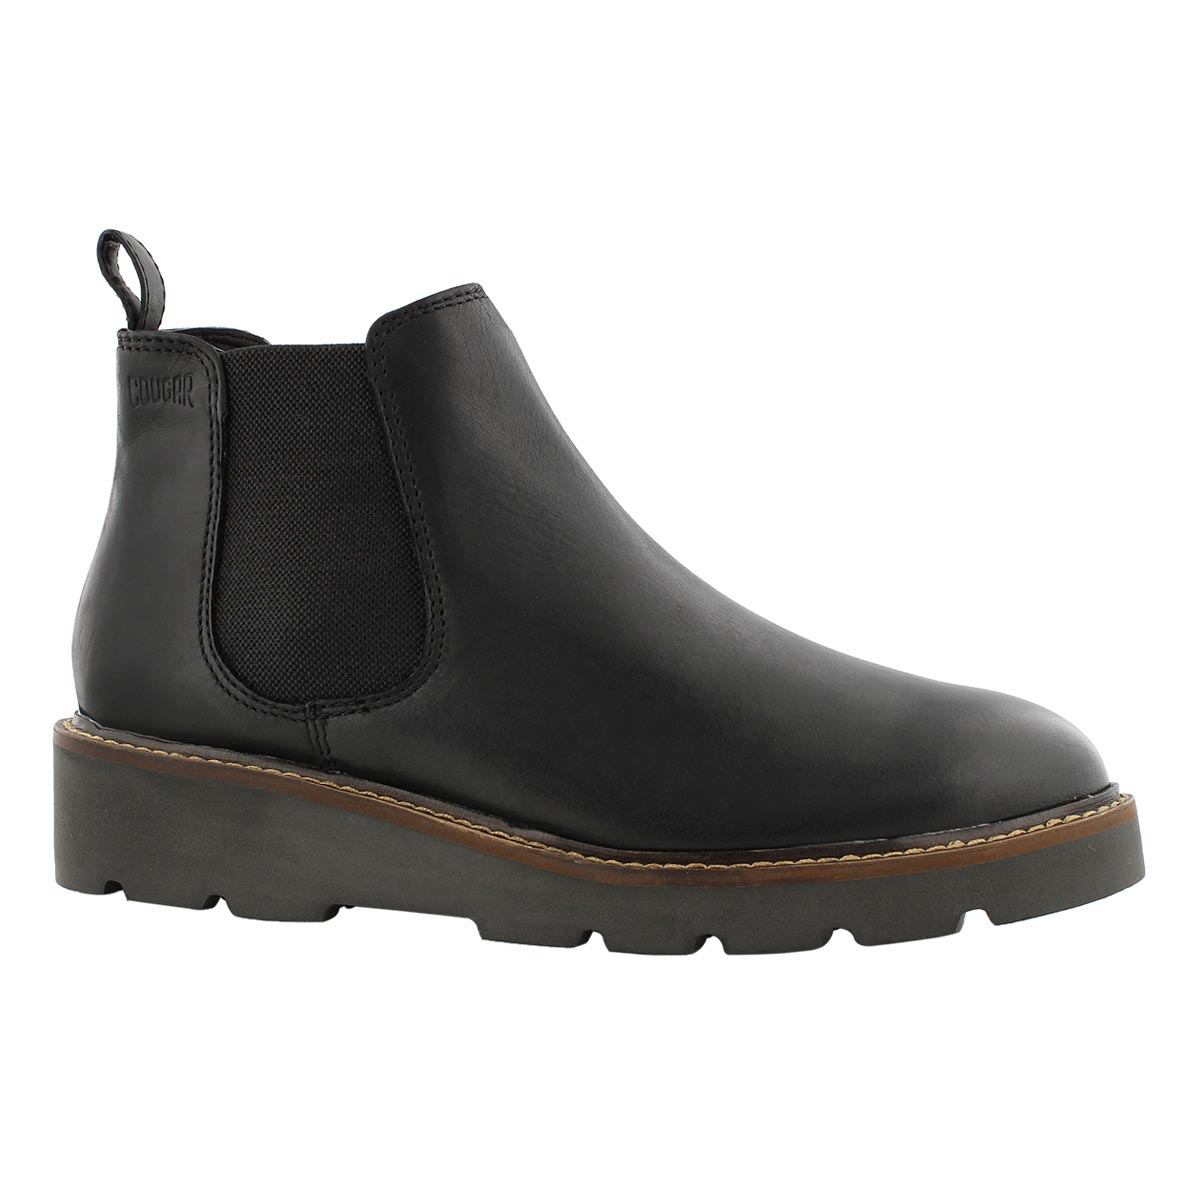 Lds Grill blk wtpf chelsea boot